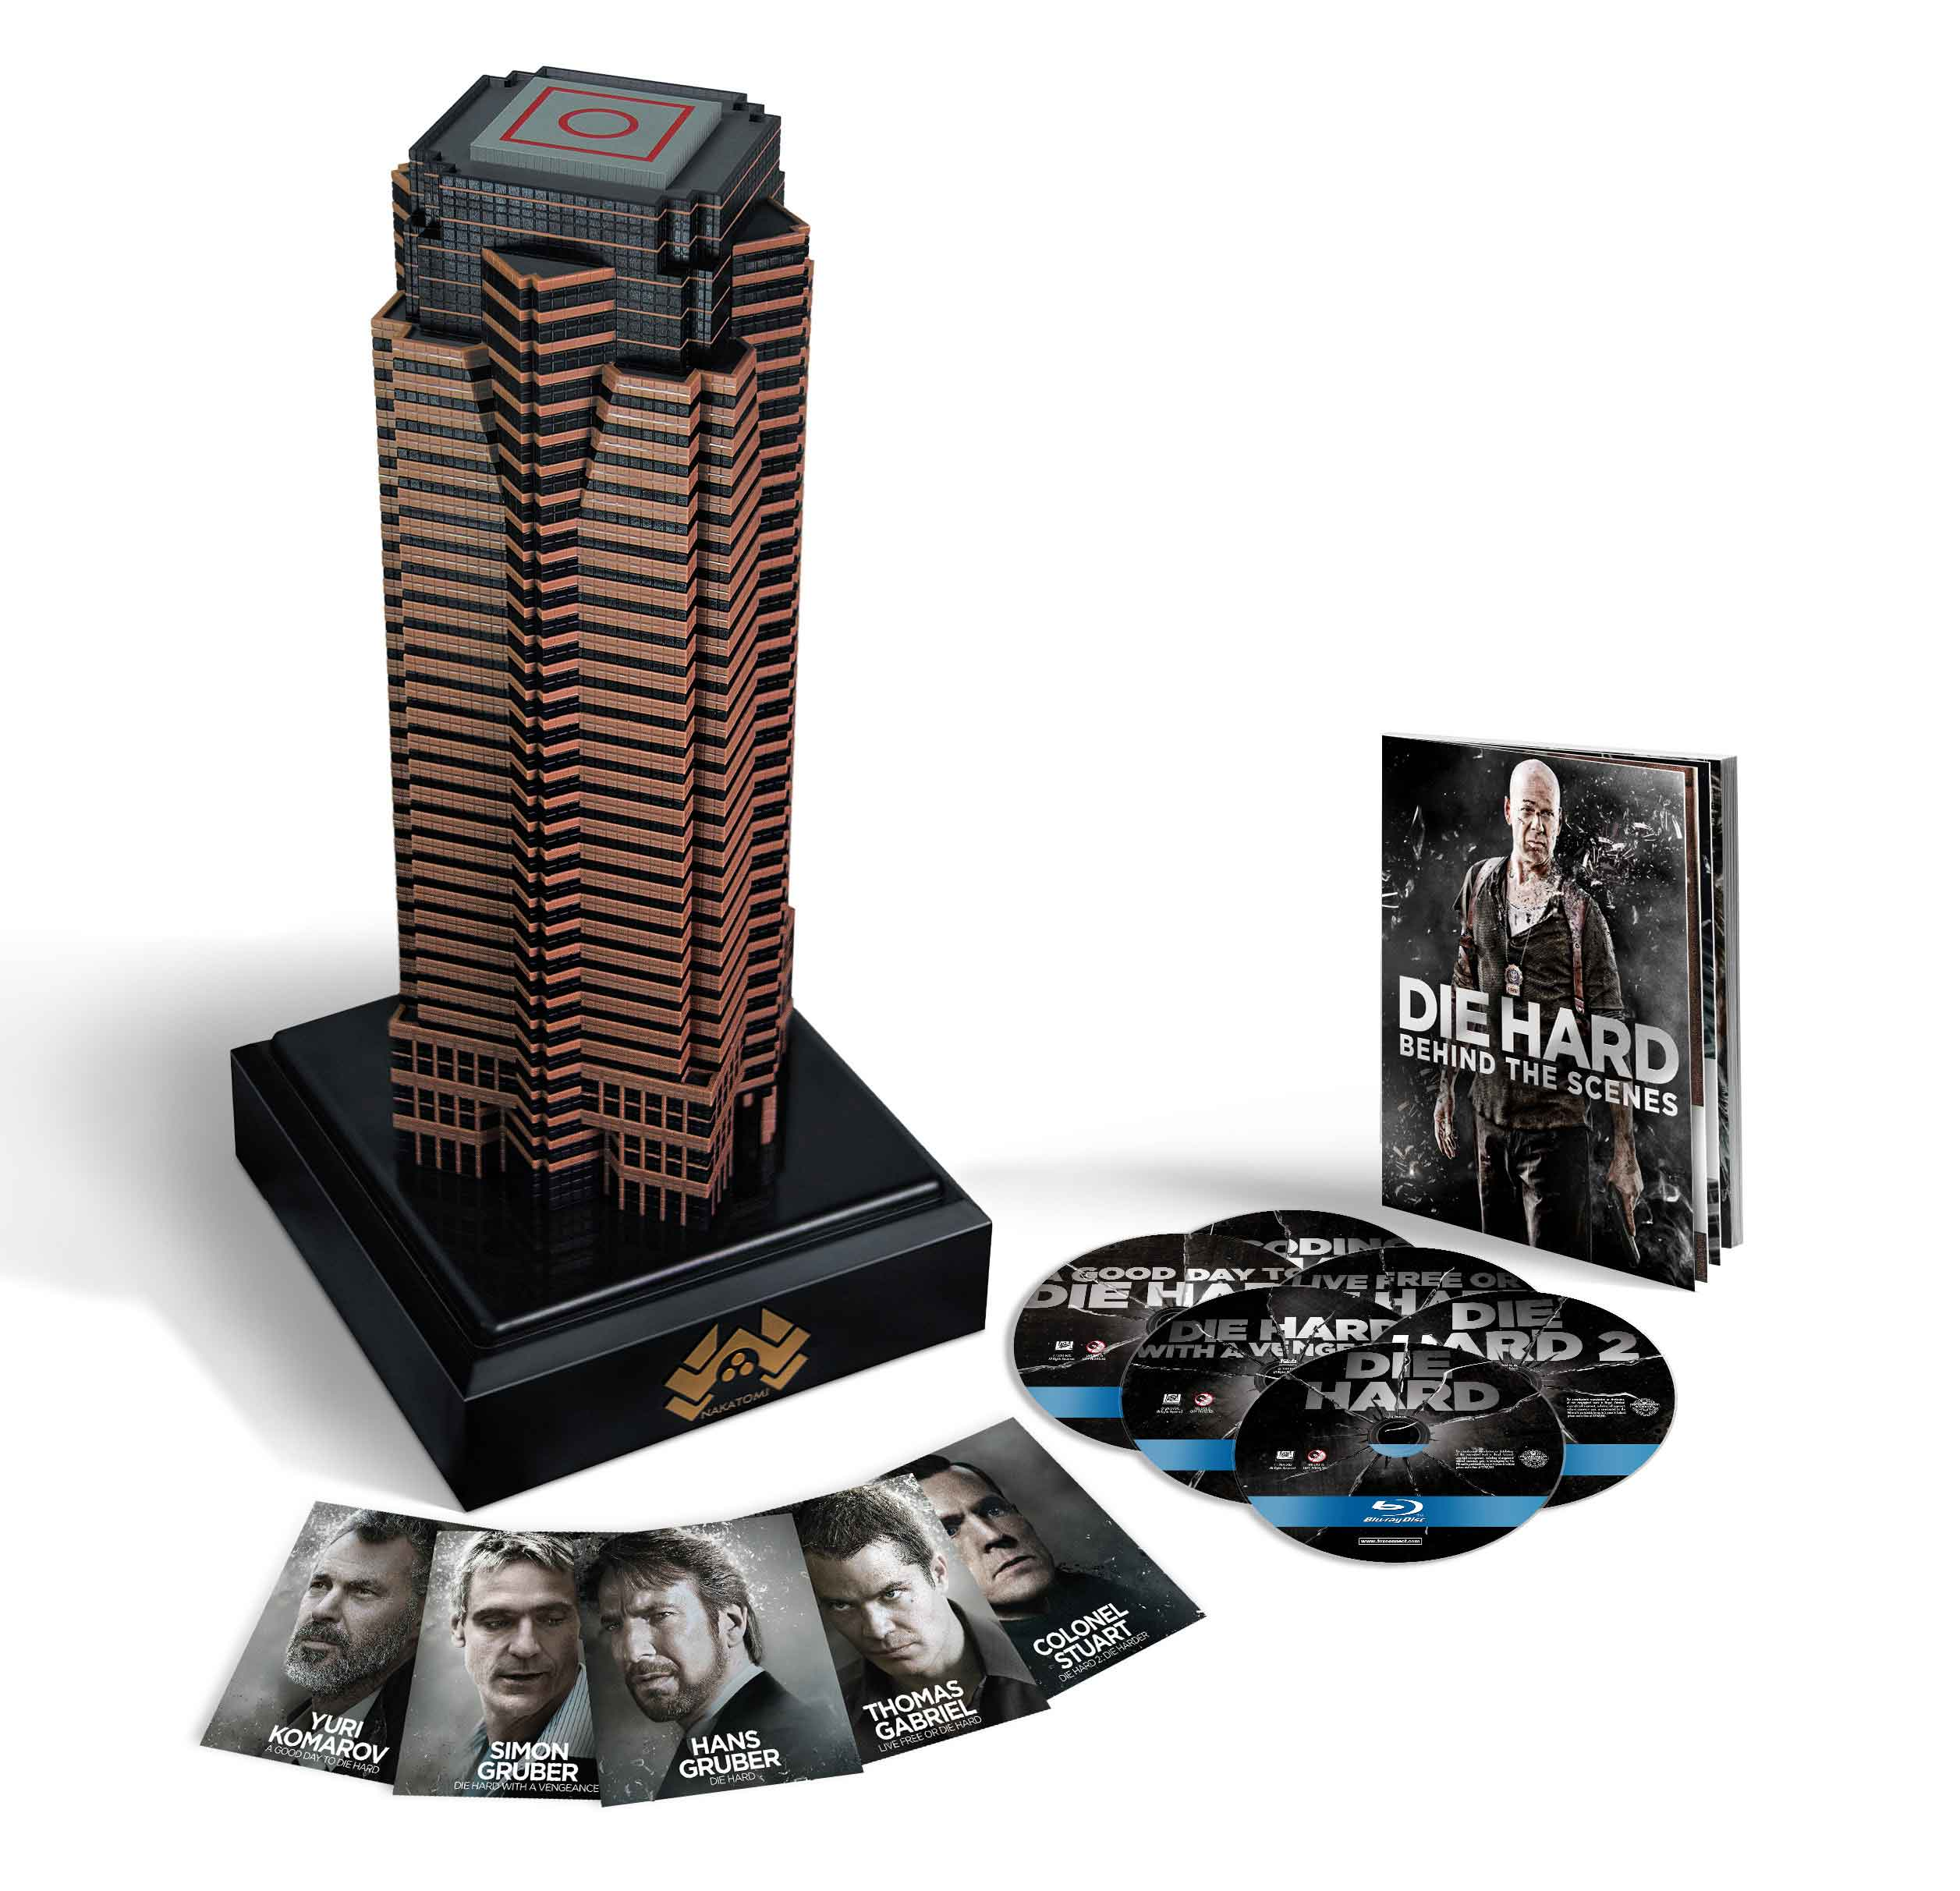 Nakatomi Plaza: Die Hard Collection Blu-ray Set Is 40